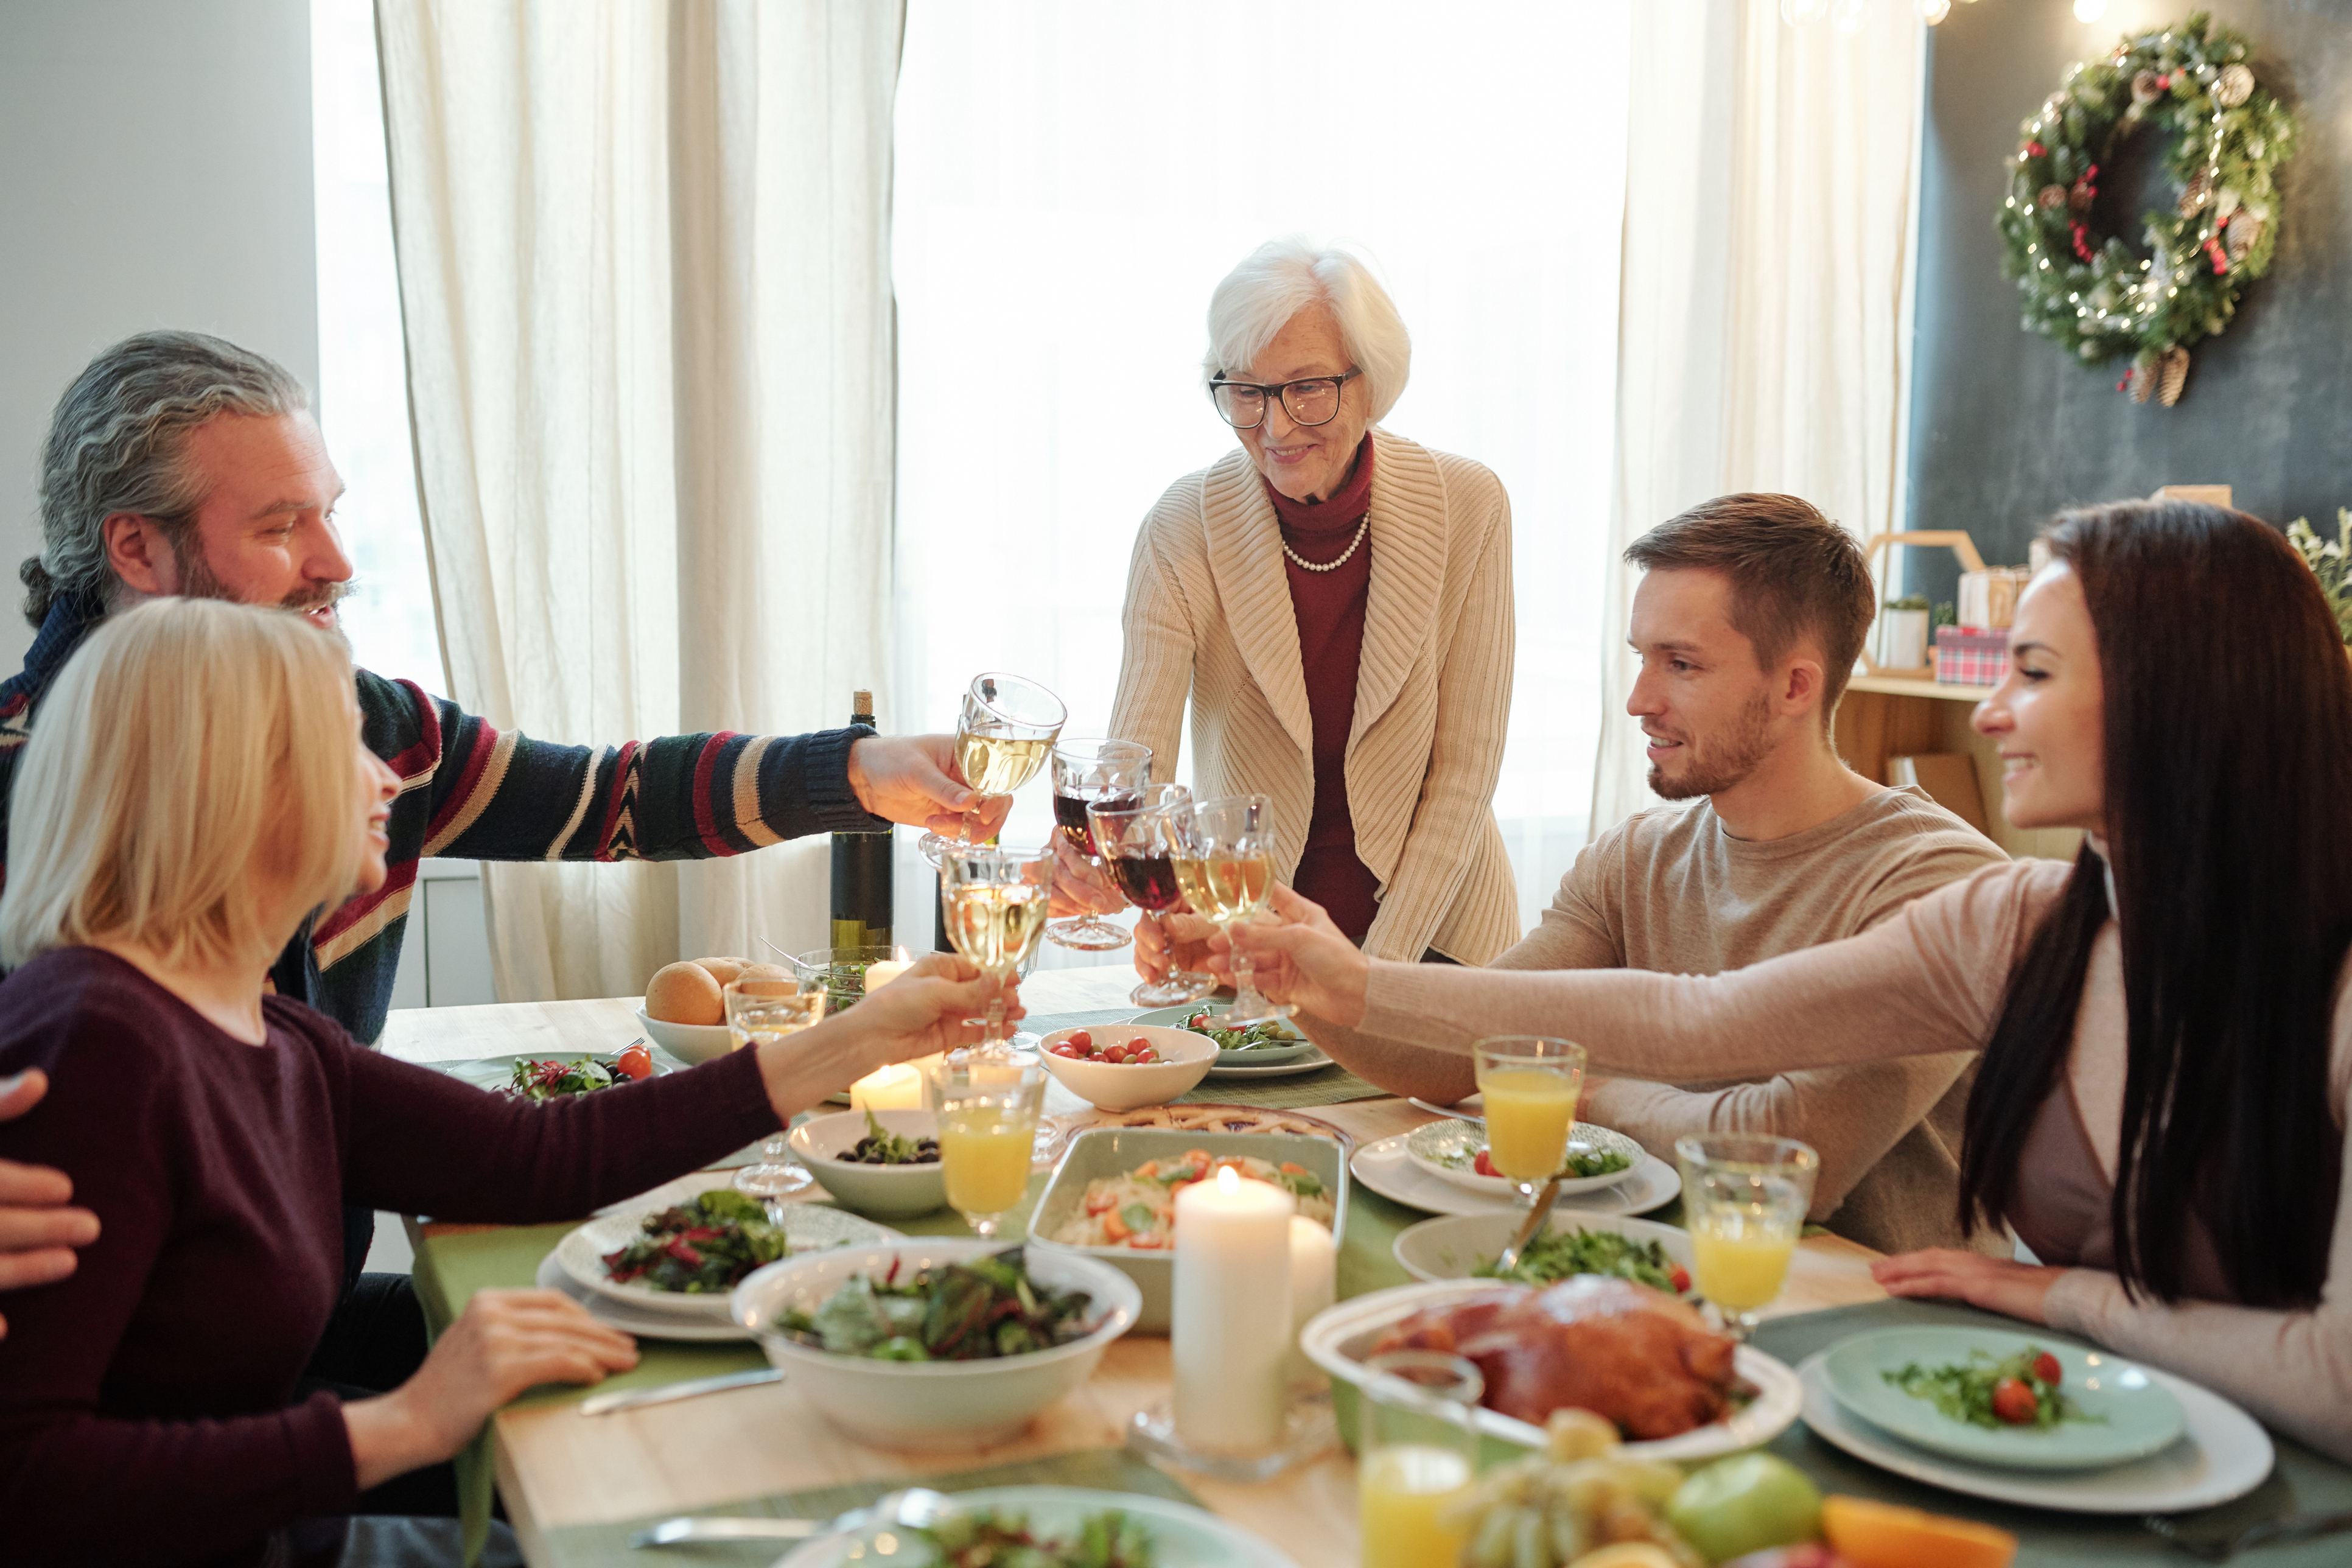 Top 5 Tips for Surviving the Holidays with Healthy Habits